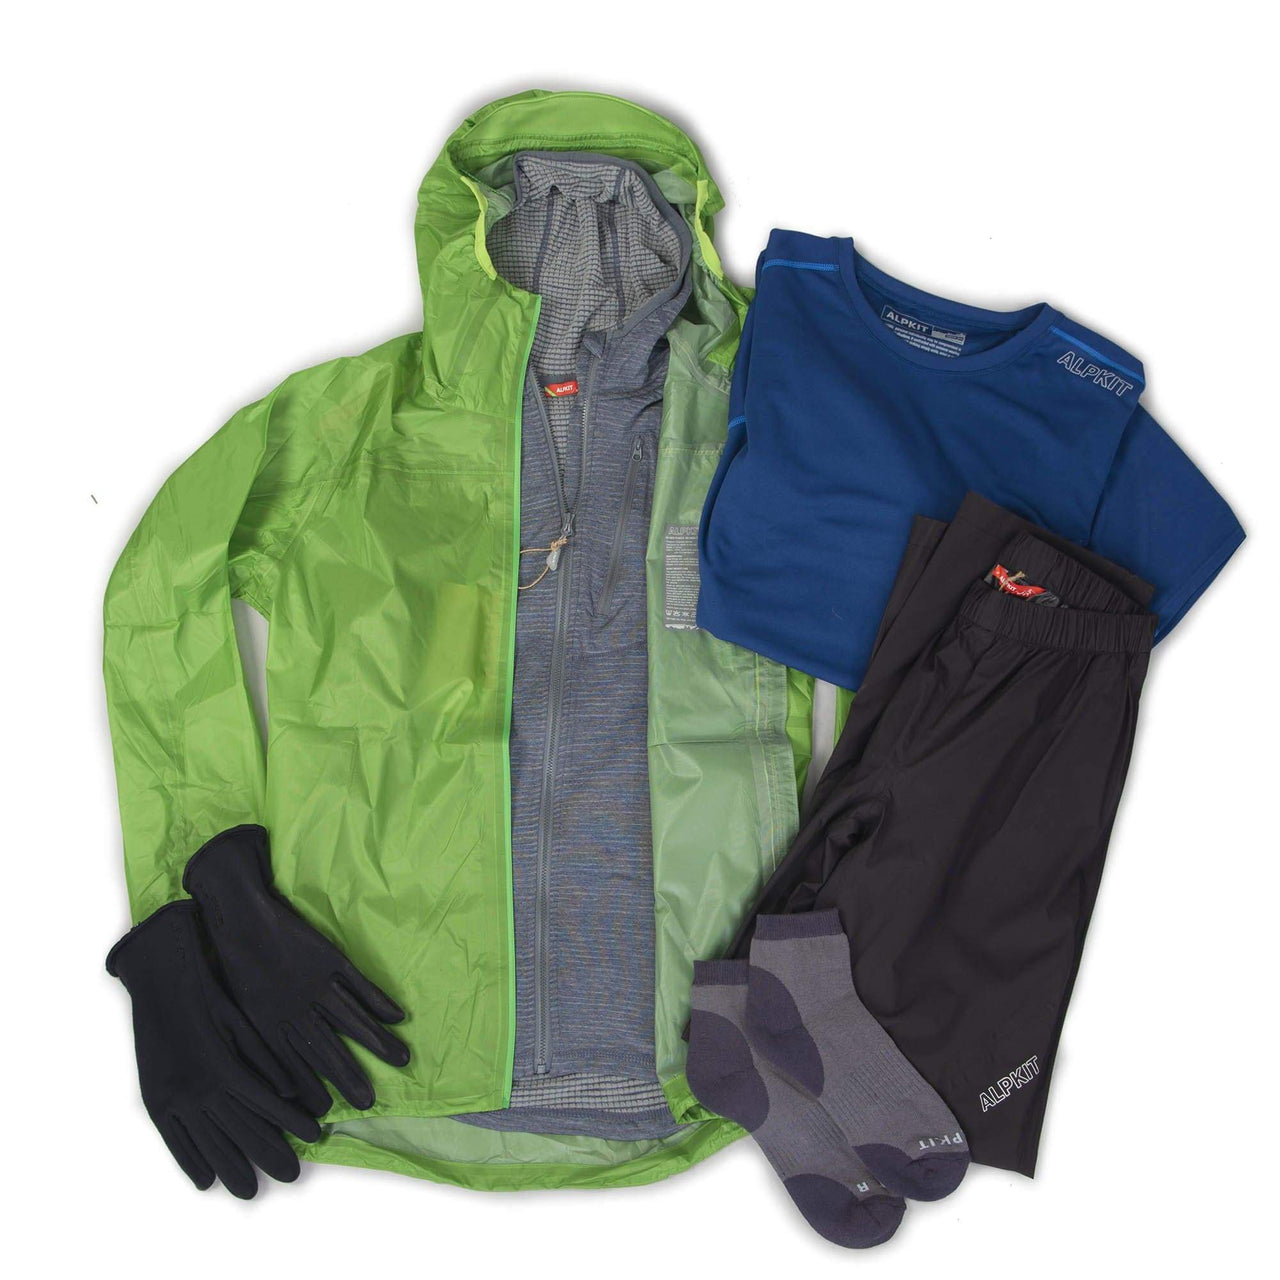 Mountain Marathon Clothing Bundle [Mens]